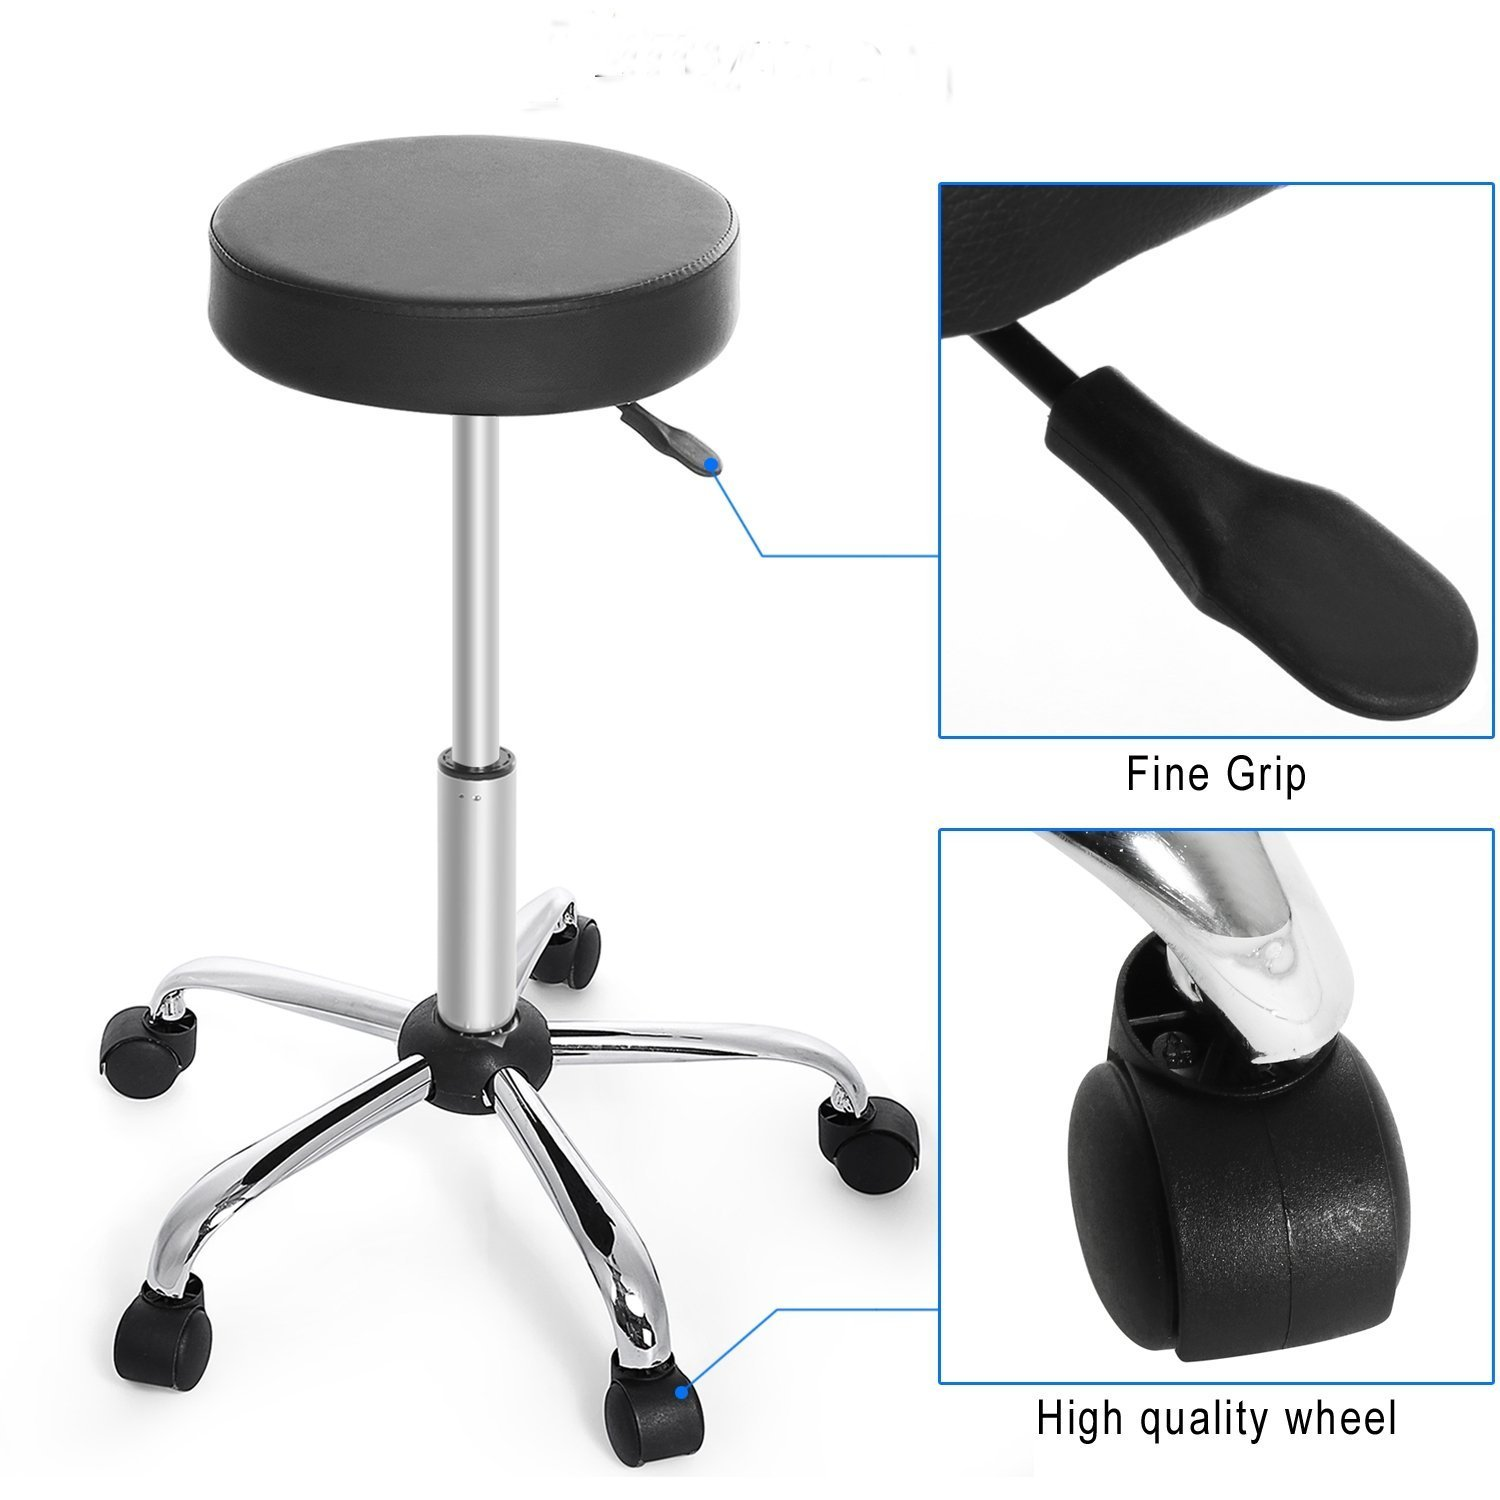 Garain Synthetic Leather Round Height Adjustable 360 Casters Rolling Swivel Wheels Bar Stool Kitchen Modern Chair Black for Massage Medical Salon Office (US Stock)